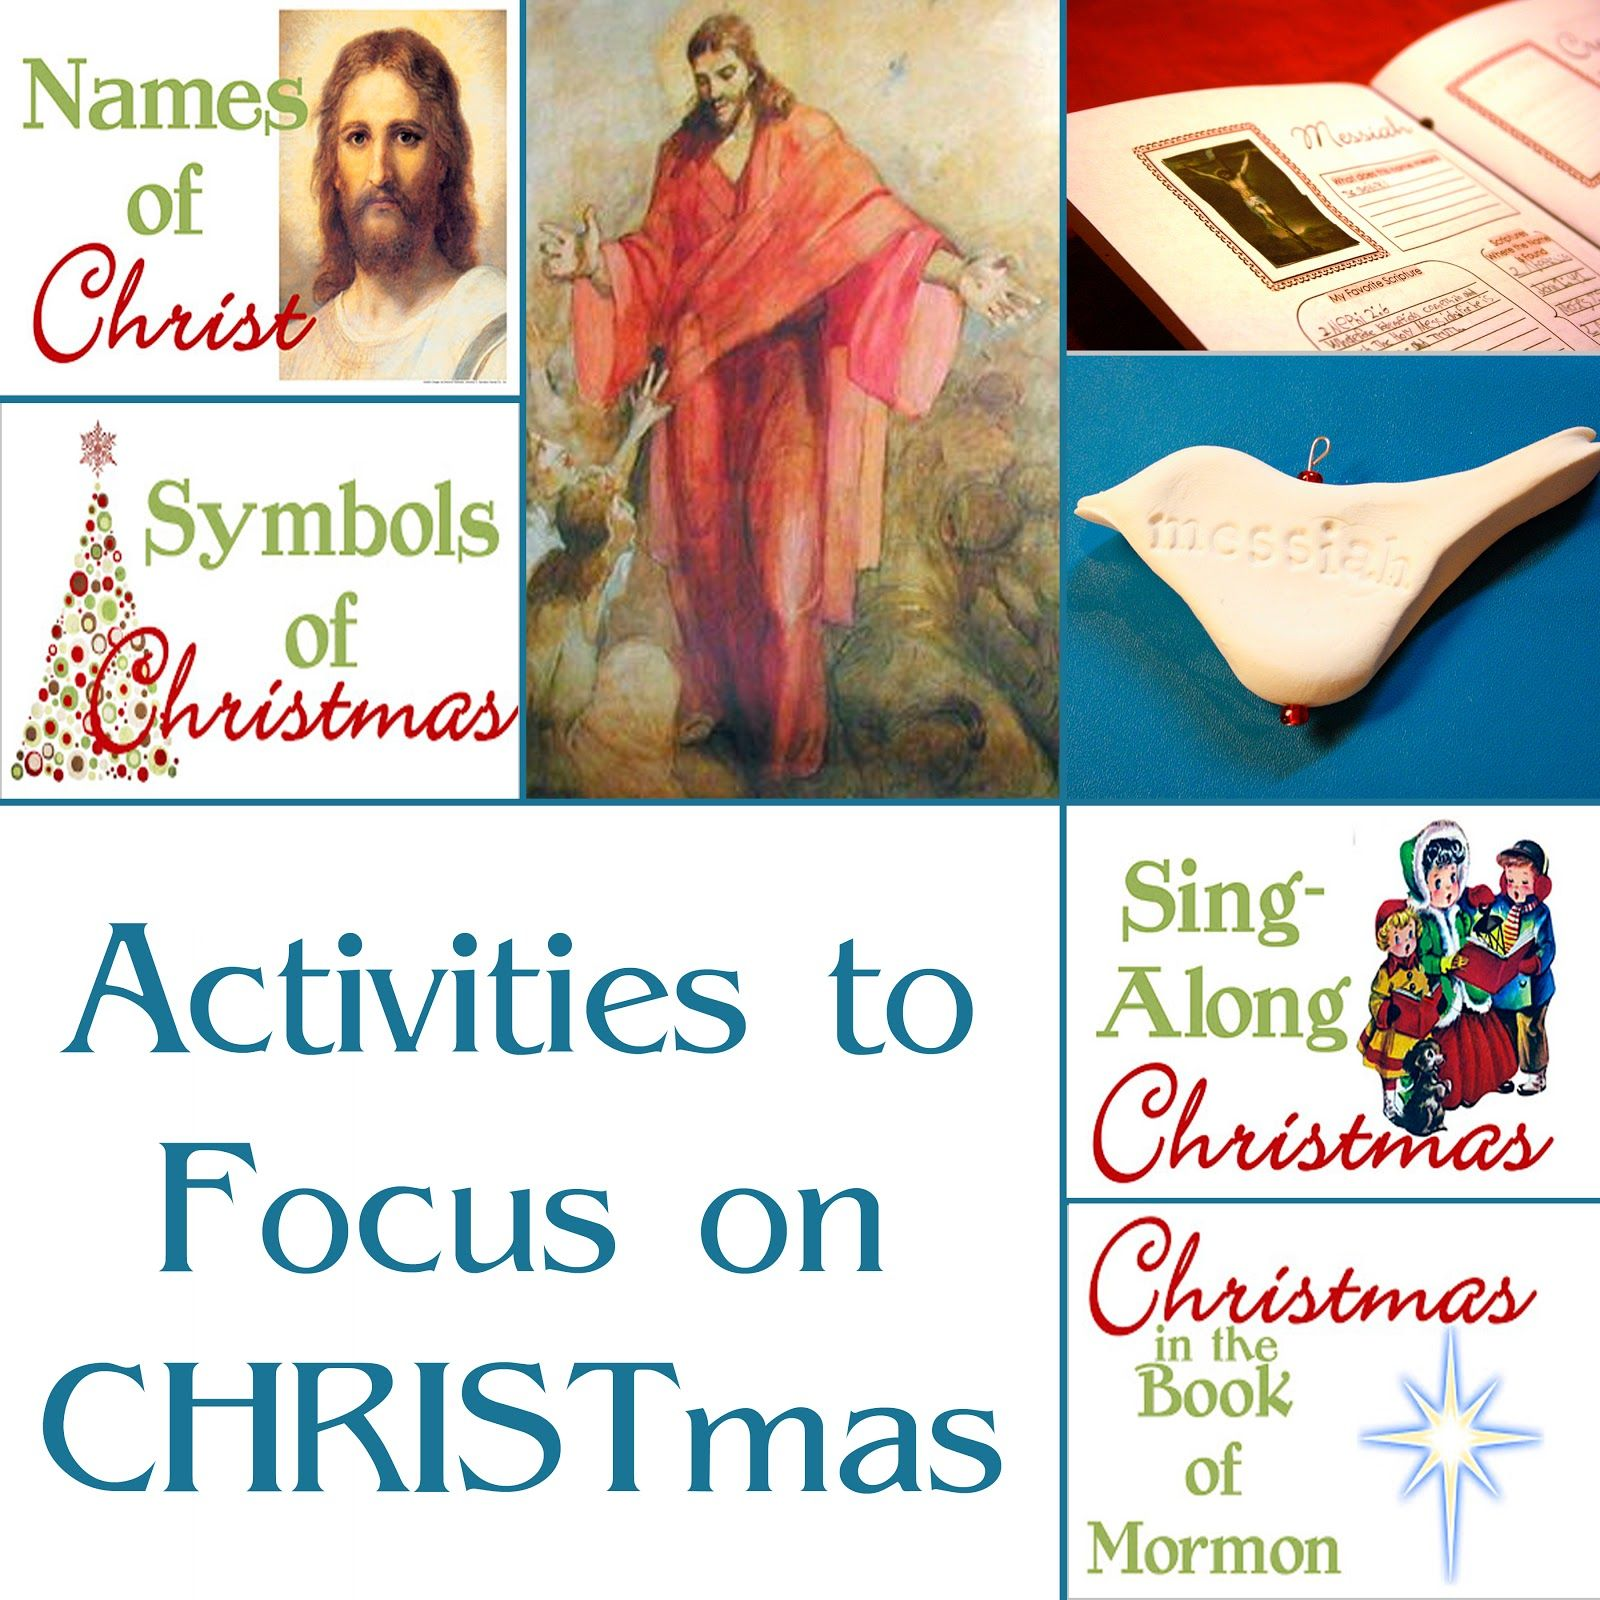 Activities to help our family focus on CHRIST this Christmas.